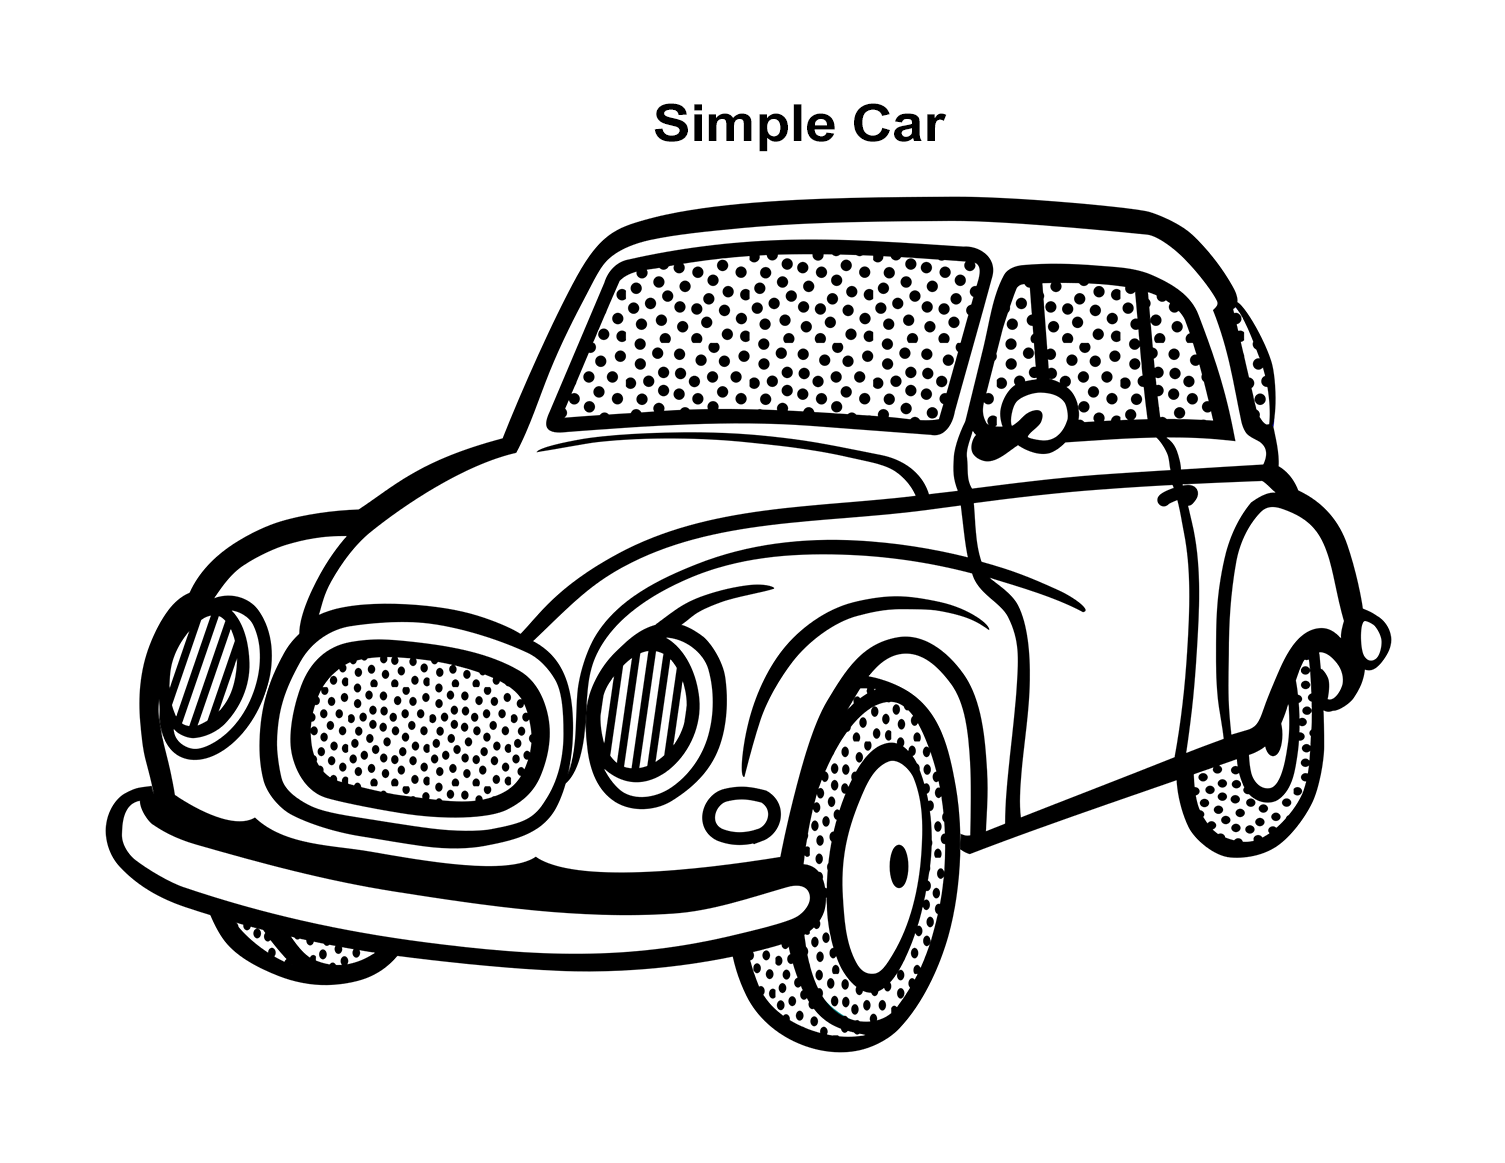 colouring in pictures of cars vintage car coloring page free printable coloring pages of colouring pictures in cars